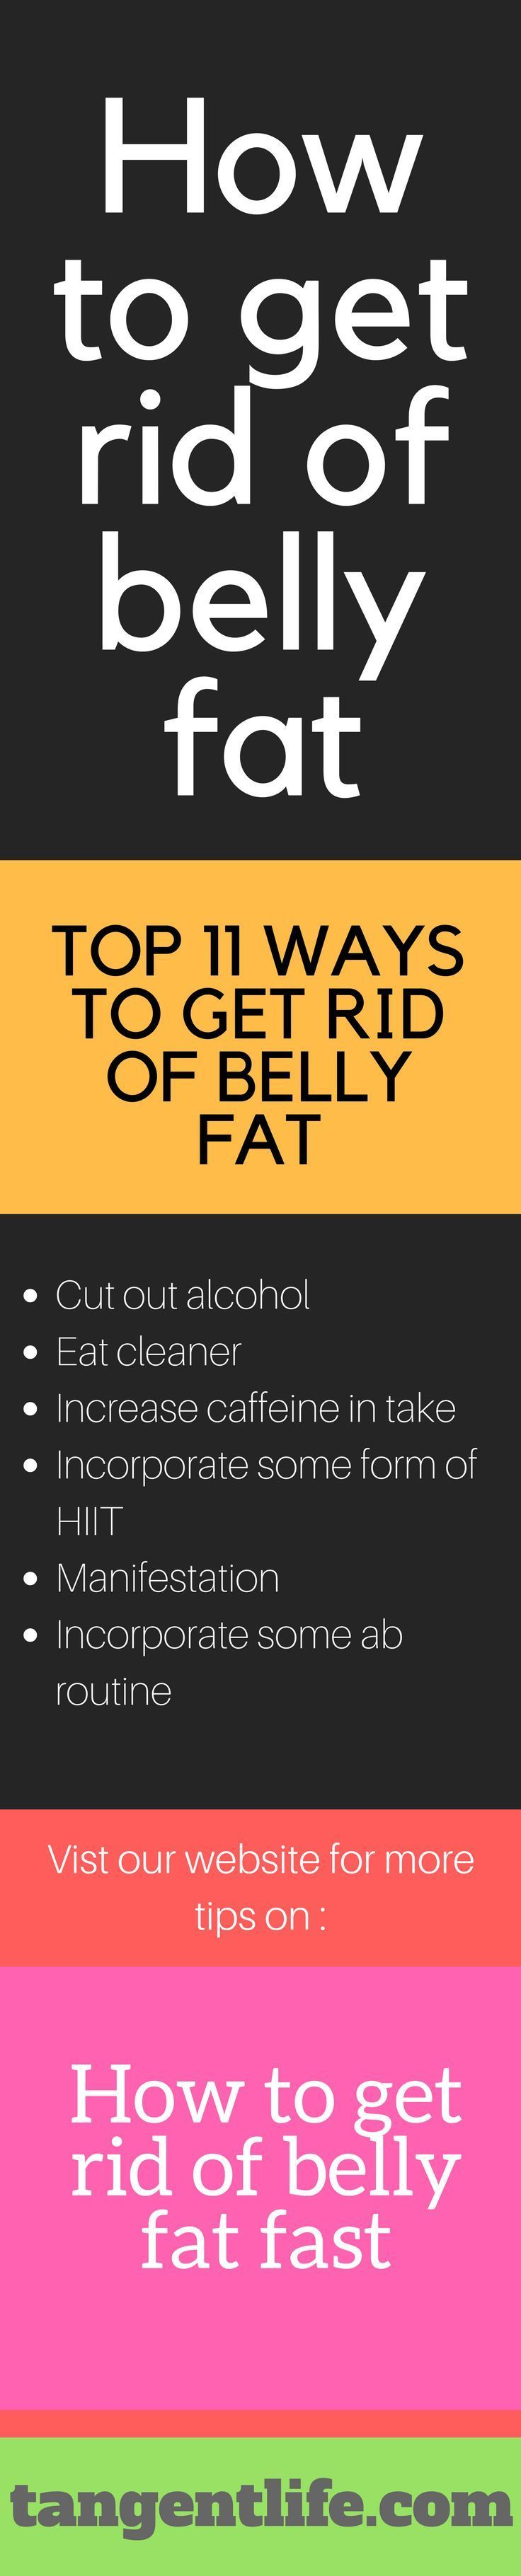 How to get rid of belly fat top 11 tips to do it fast. #fat #belly #how #to #howto.How to get rid of belly fat for men how to get rid of belly fat quickly how to get rid of belly fat fast how to get rid of belly fat after baby how to get rid of belly fat for teens how to get rid of belly fat overnight how to get rid of belly fat in a week how to get rid of belly fat exercises how to get rid of belly fat drinks how to get rid of belly fat woman how to get rid of belly fat food